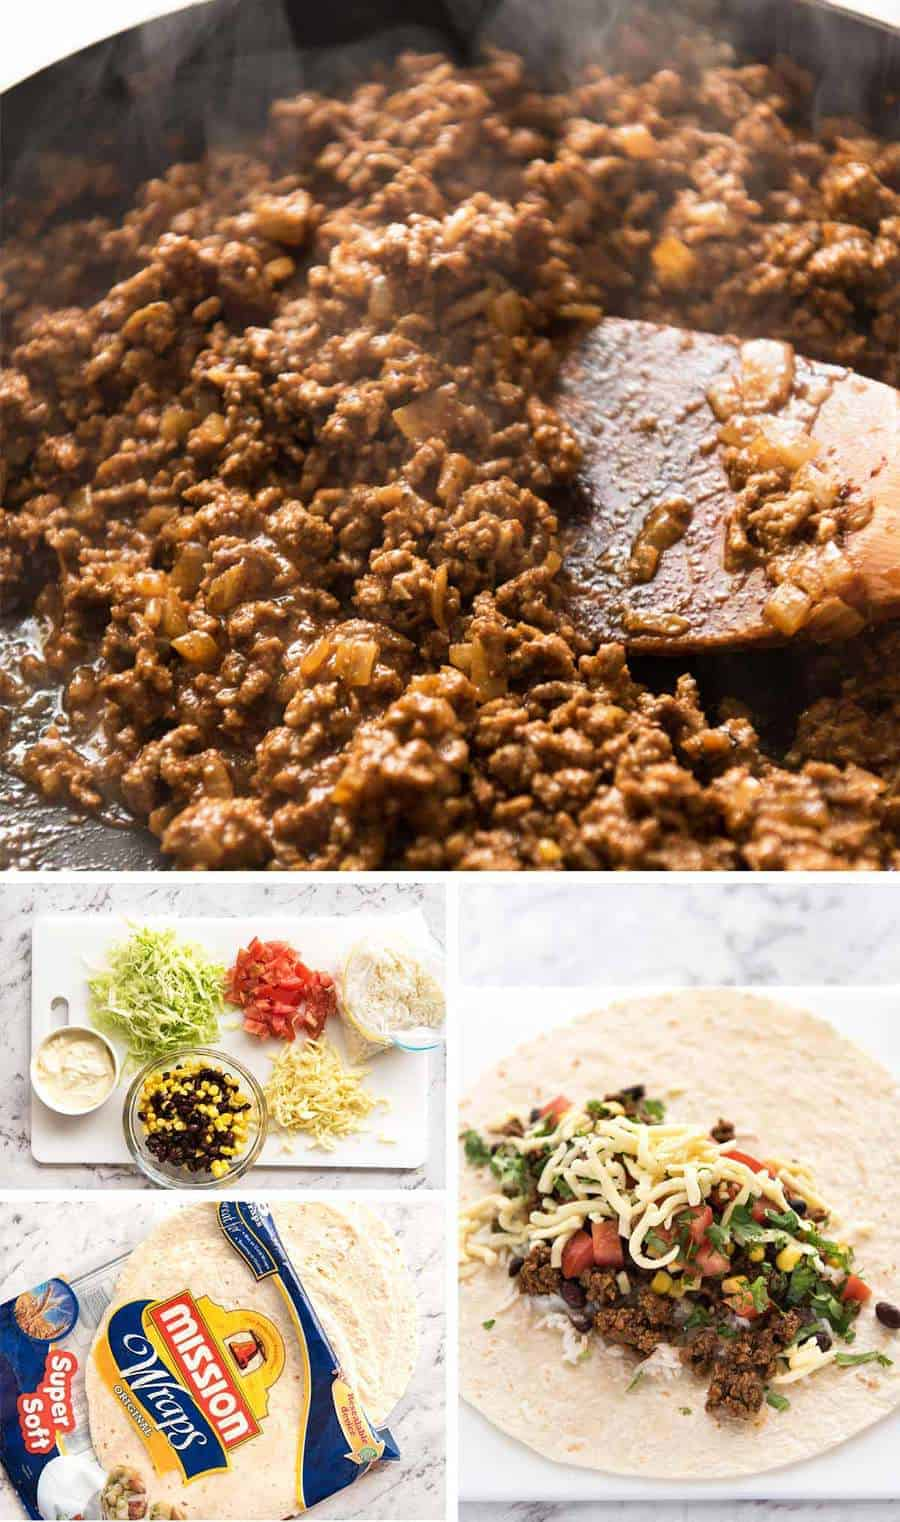 A great everyday Beef Burrito, made with super tasty seasoned beef filling. Fresh and freezable versions! www.recipetineats.com